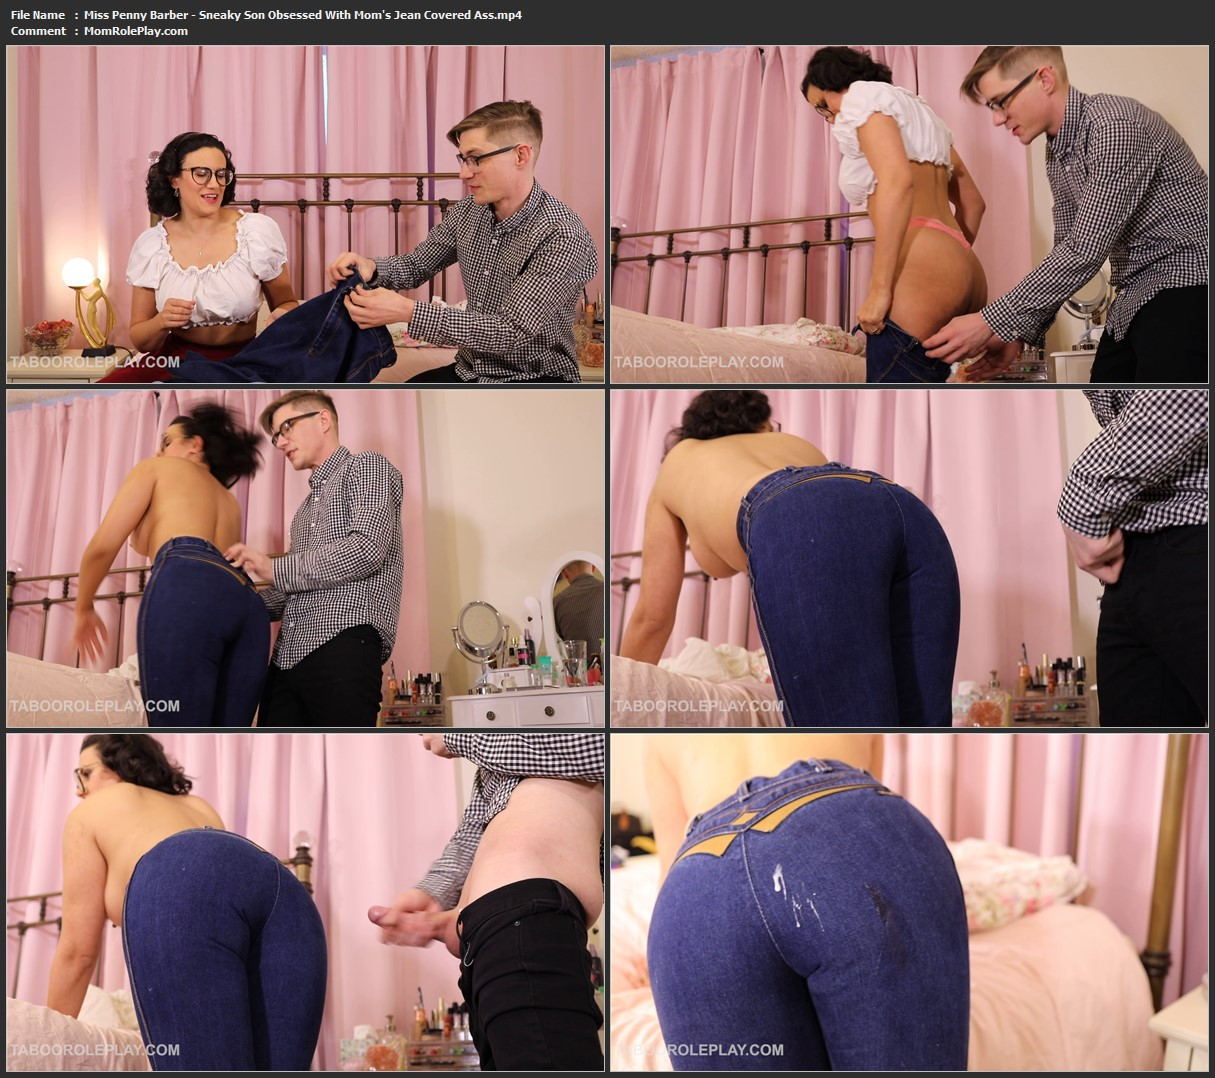 Miss Penny Barber - Sneaky Son Obsessed With Mom's Jean Covered Ass (HD MP4)